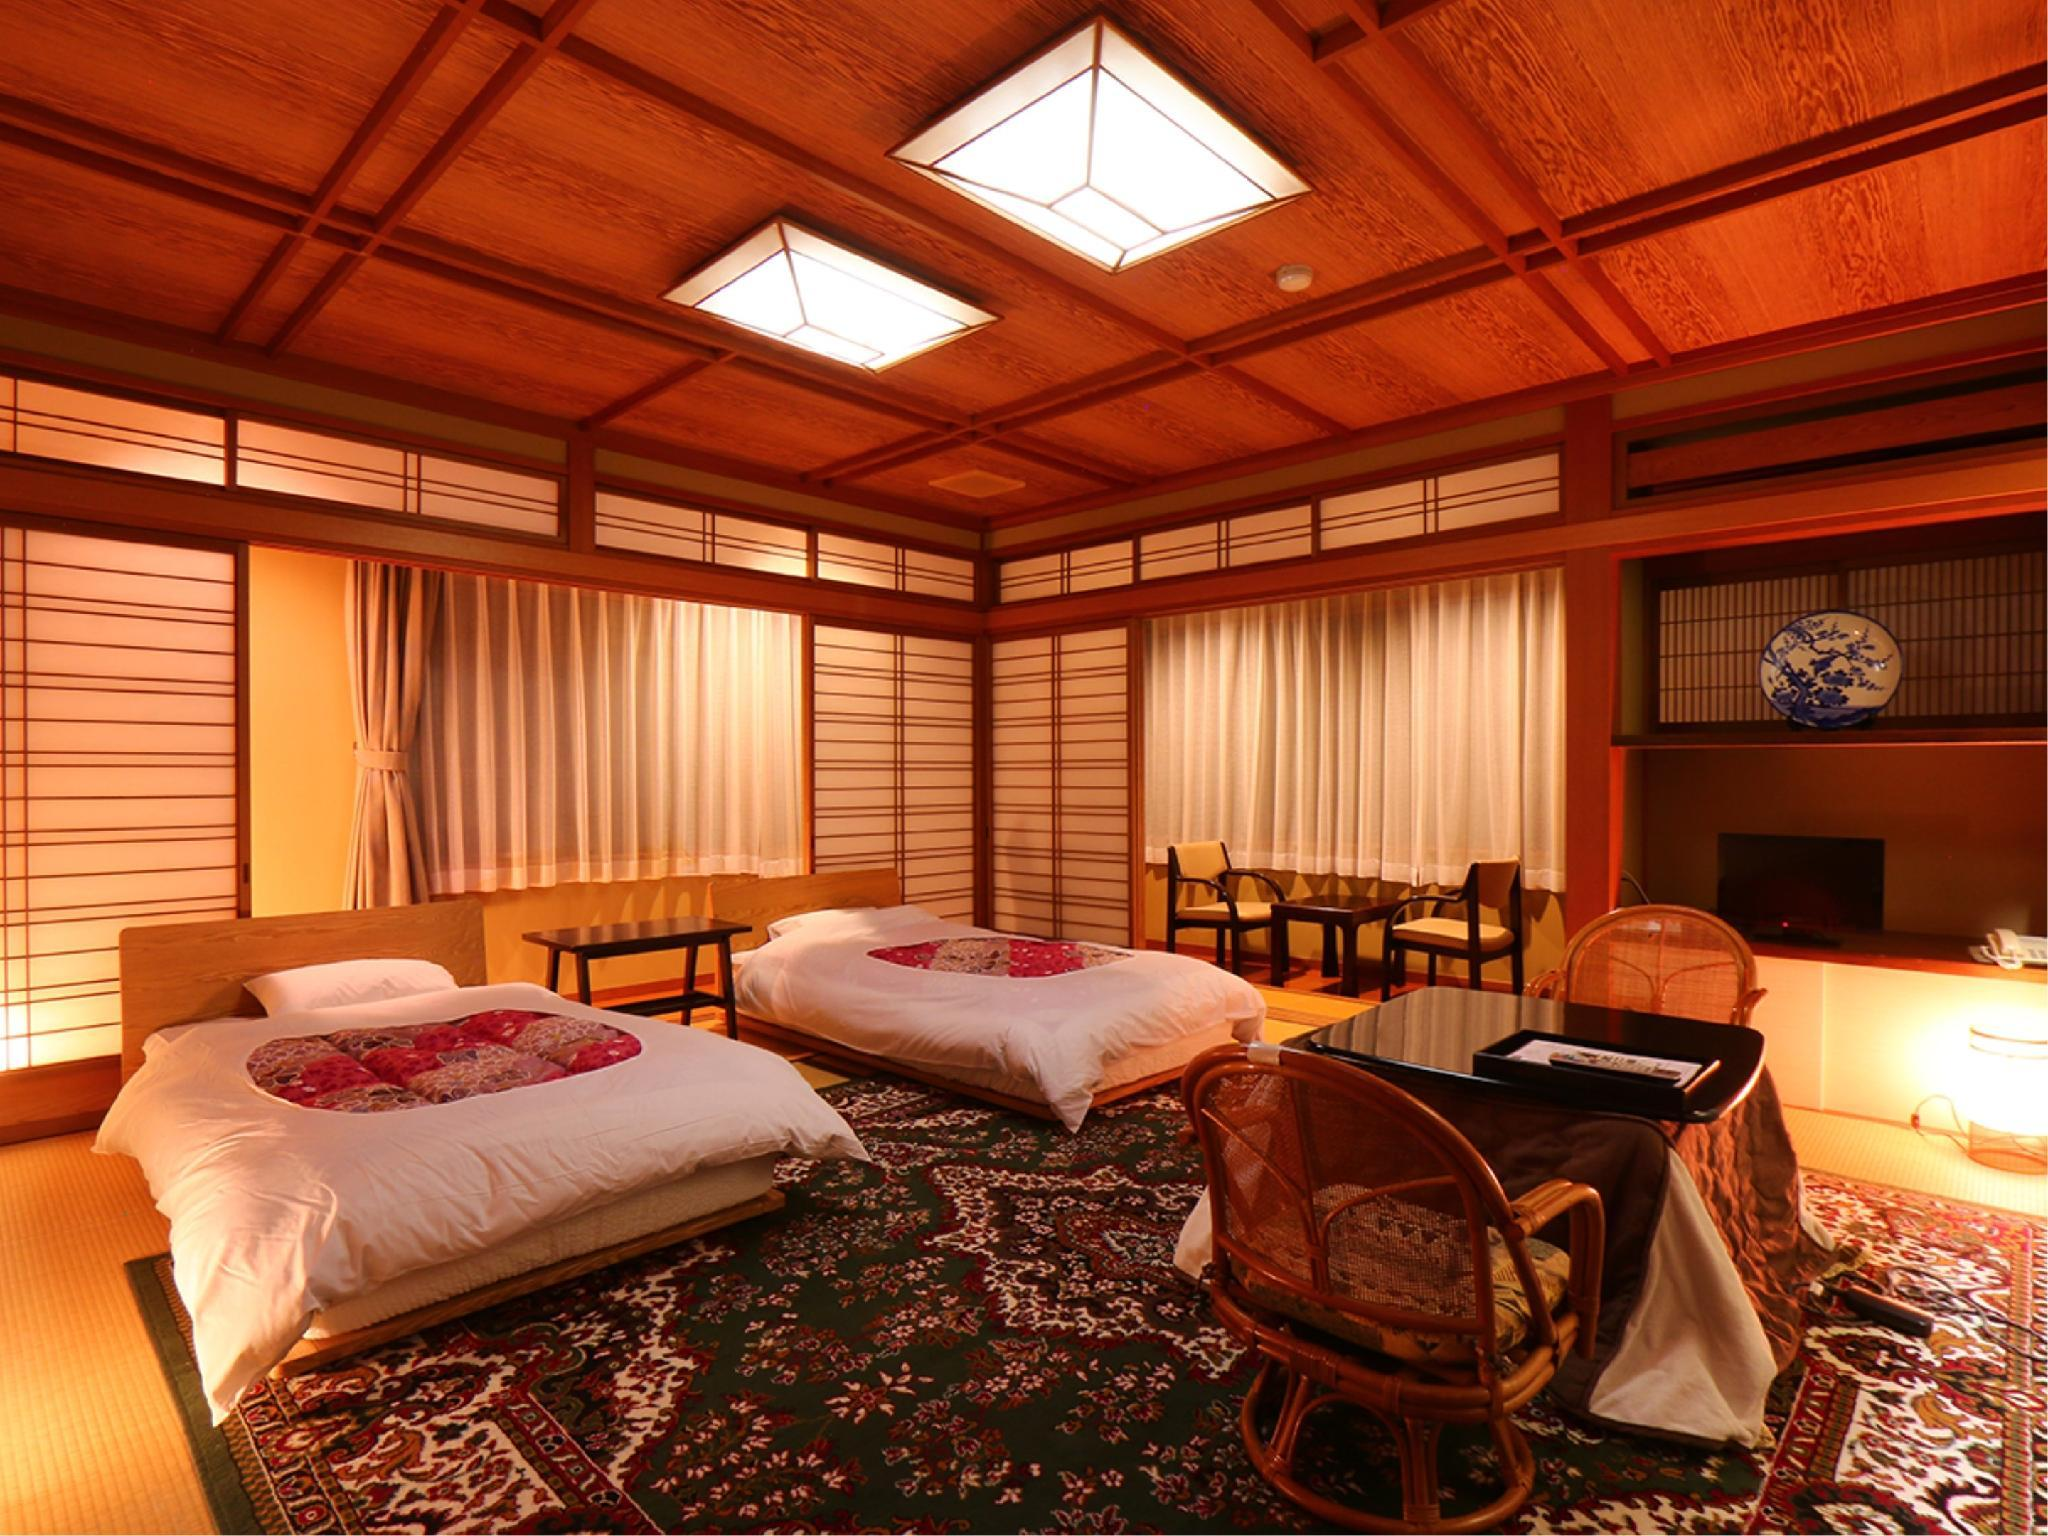 日式矮床房+宽走廊 (Room with Japanese-style Bed(s) + Hiroen Space)